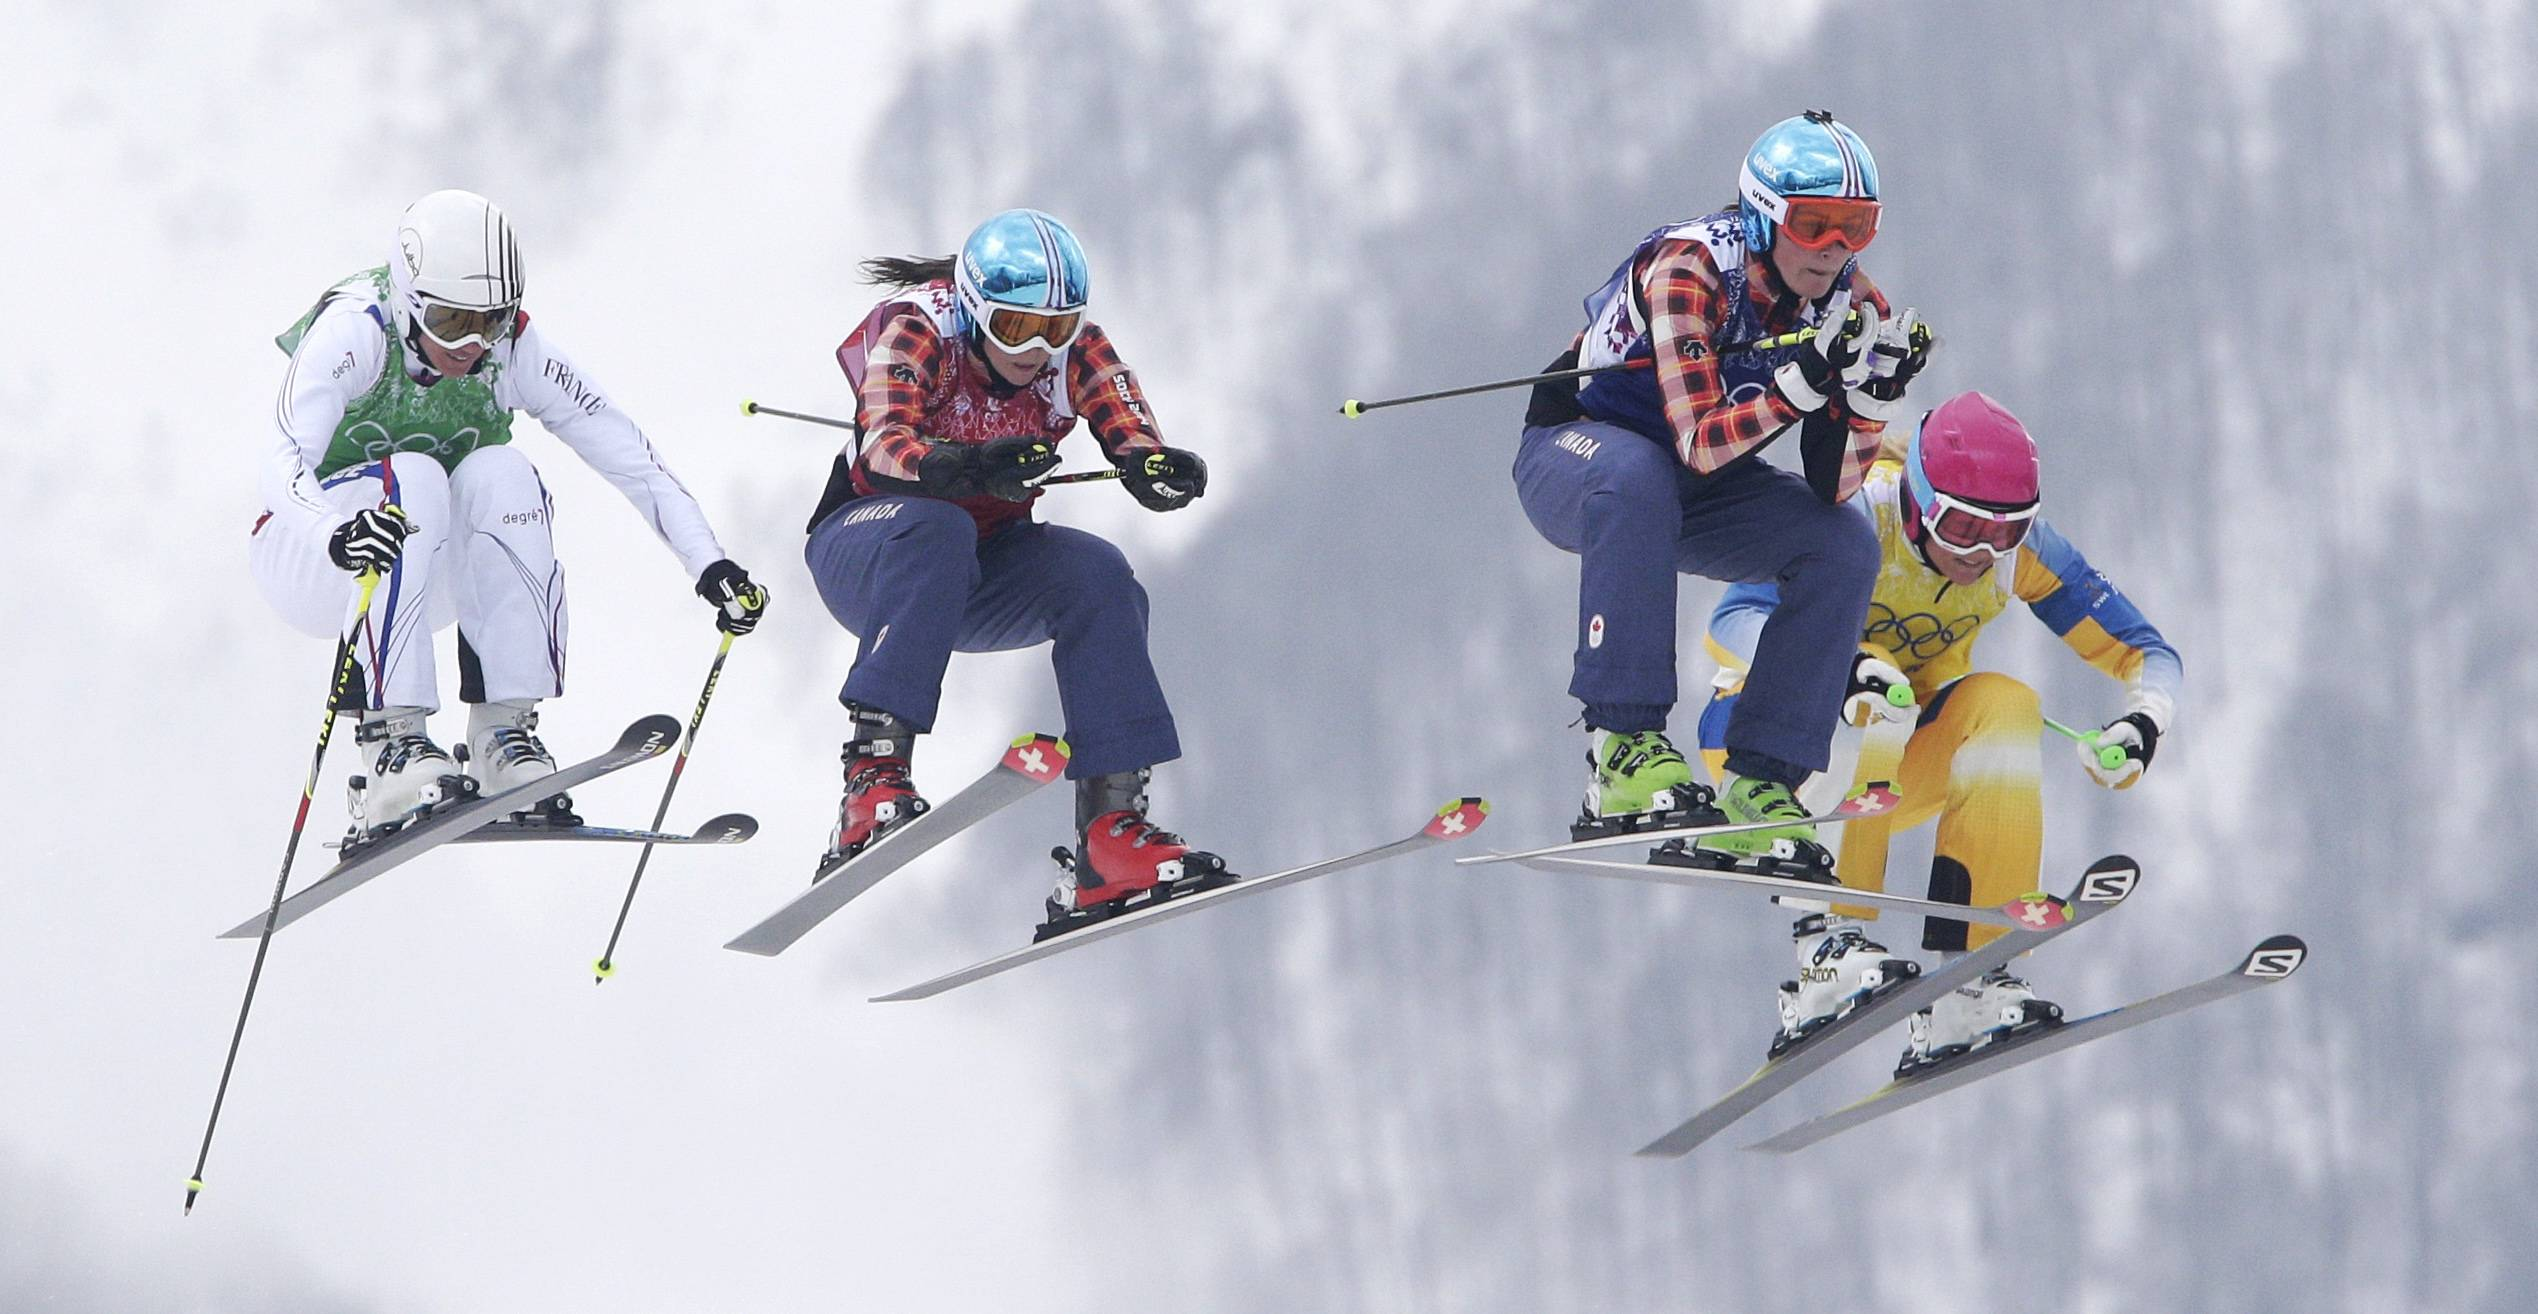 France's Ophelie David, from left, Canada's Kelsey Serwa, Canada's Marielle Thompson and Sweden's Anna Holmlund compete Friday during their ski cross final at the 2014 Winter Olympics in Krasnaya Polyana, Russia.